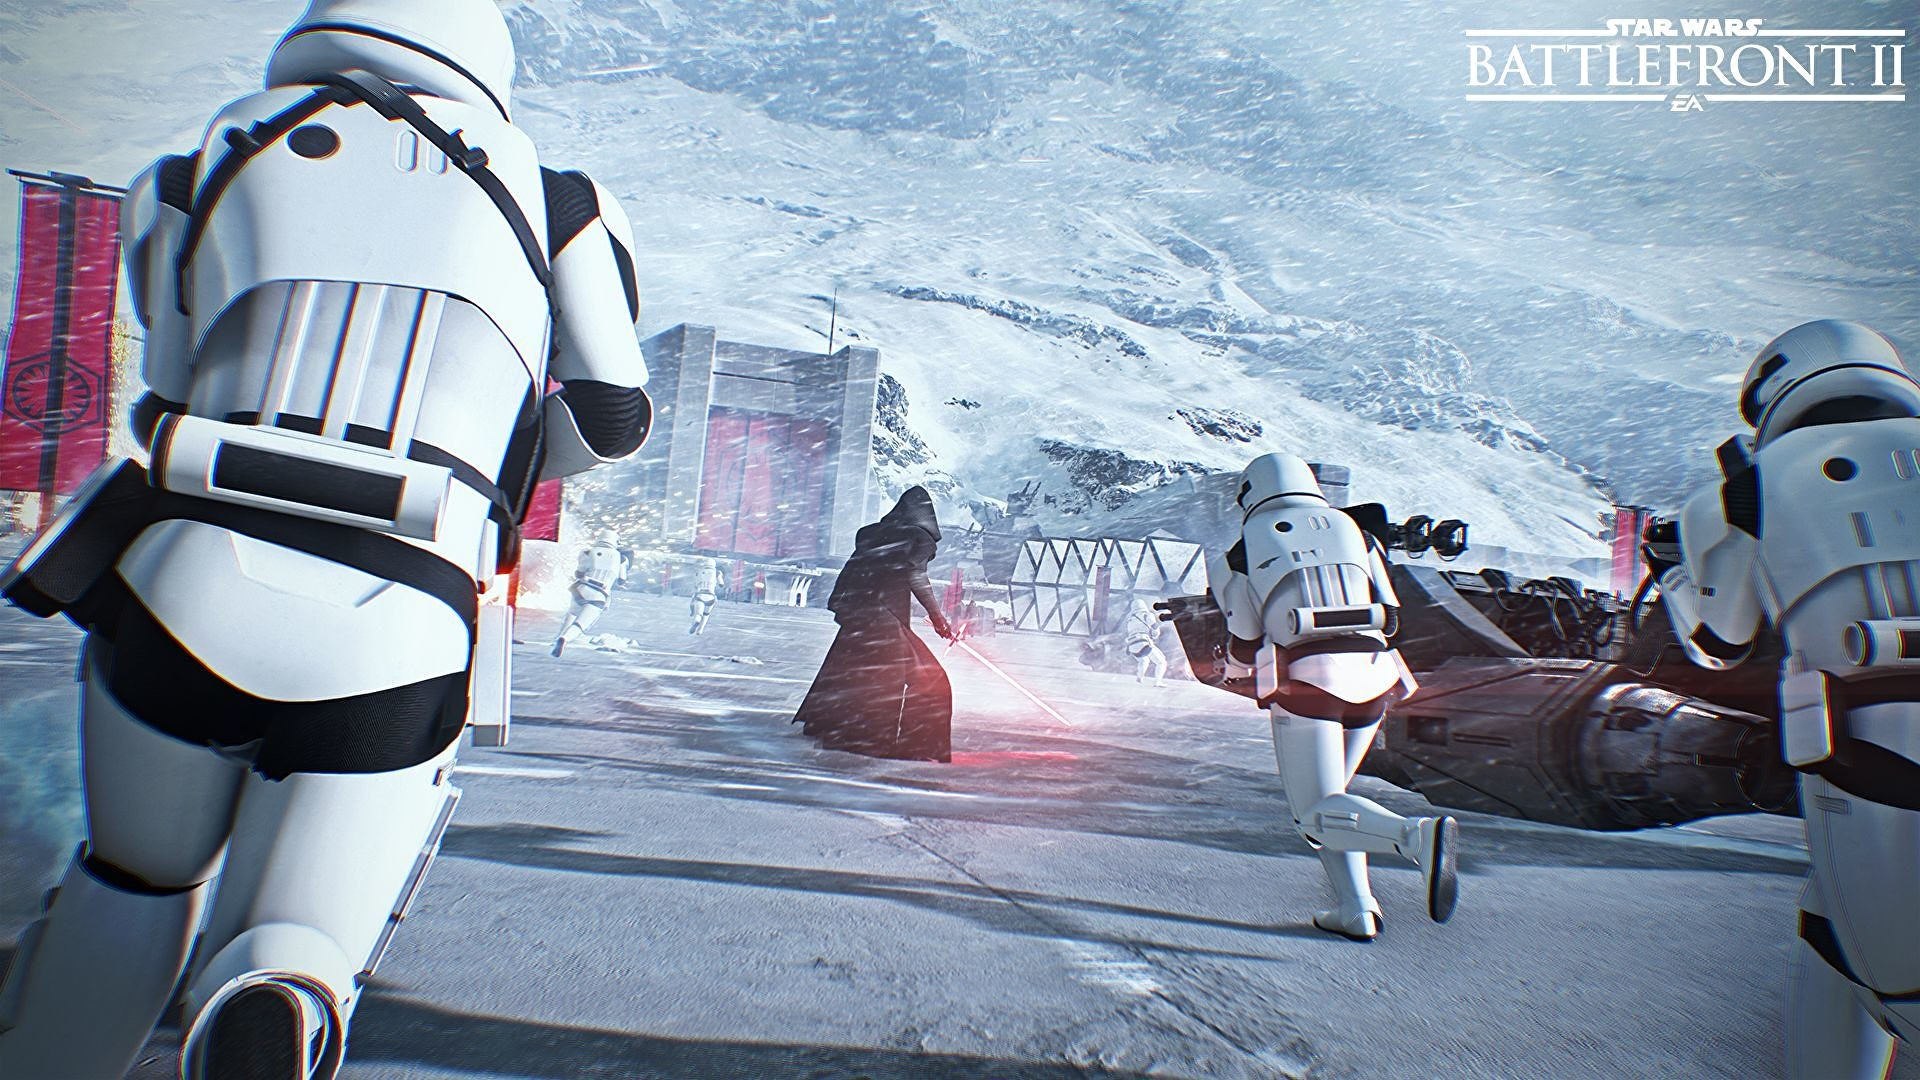 Star Wars Battlefront 2 Infiltrator Reinforcements